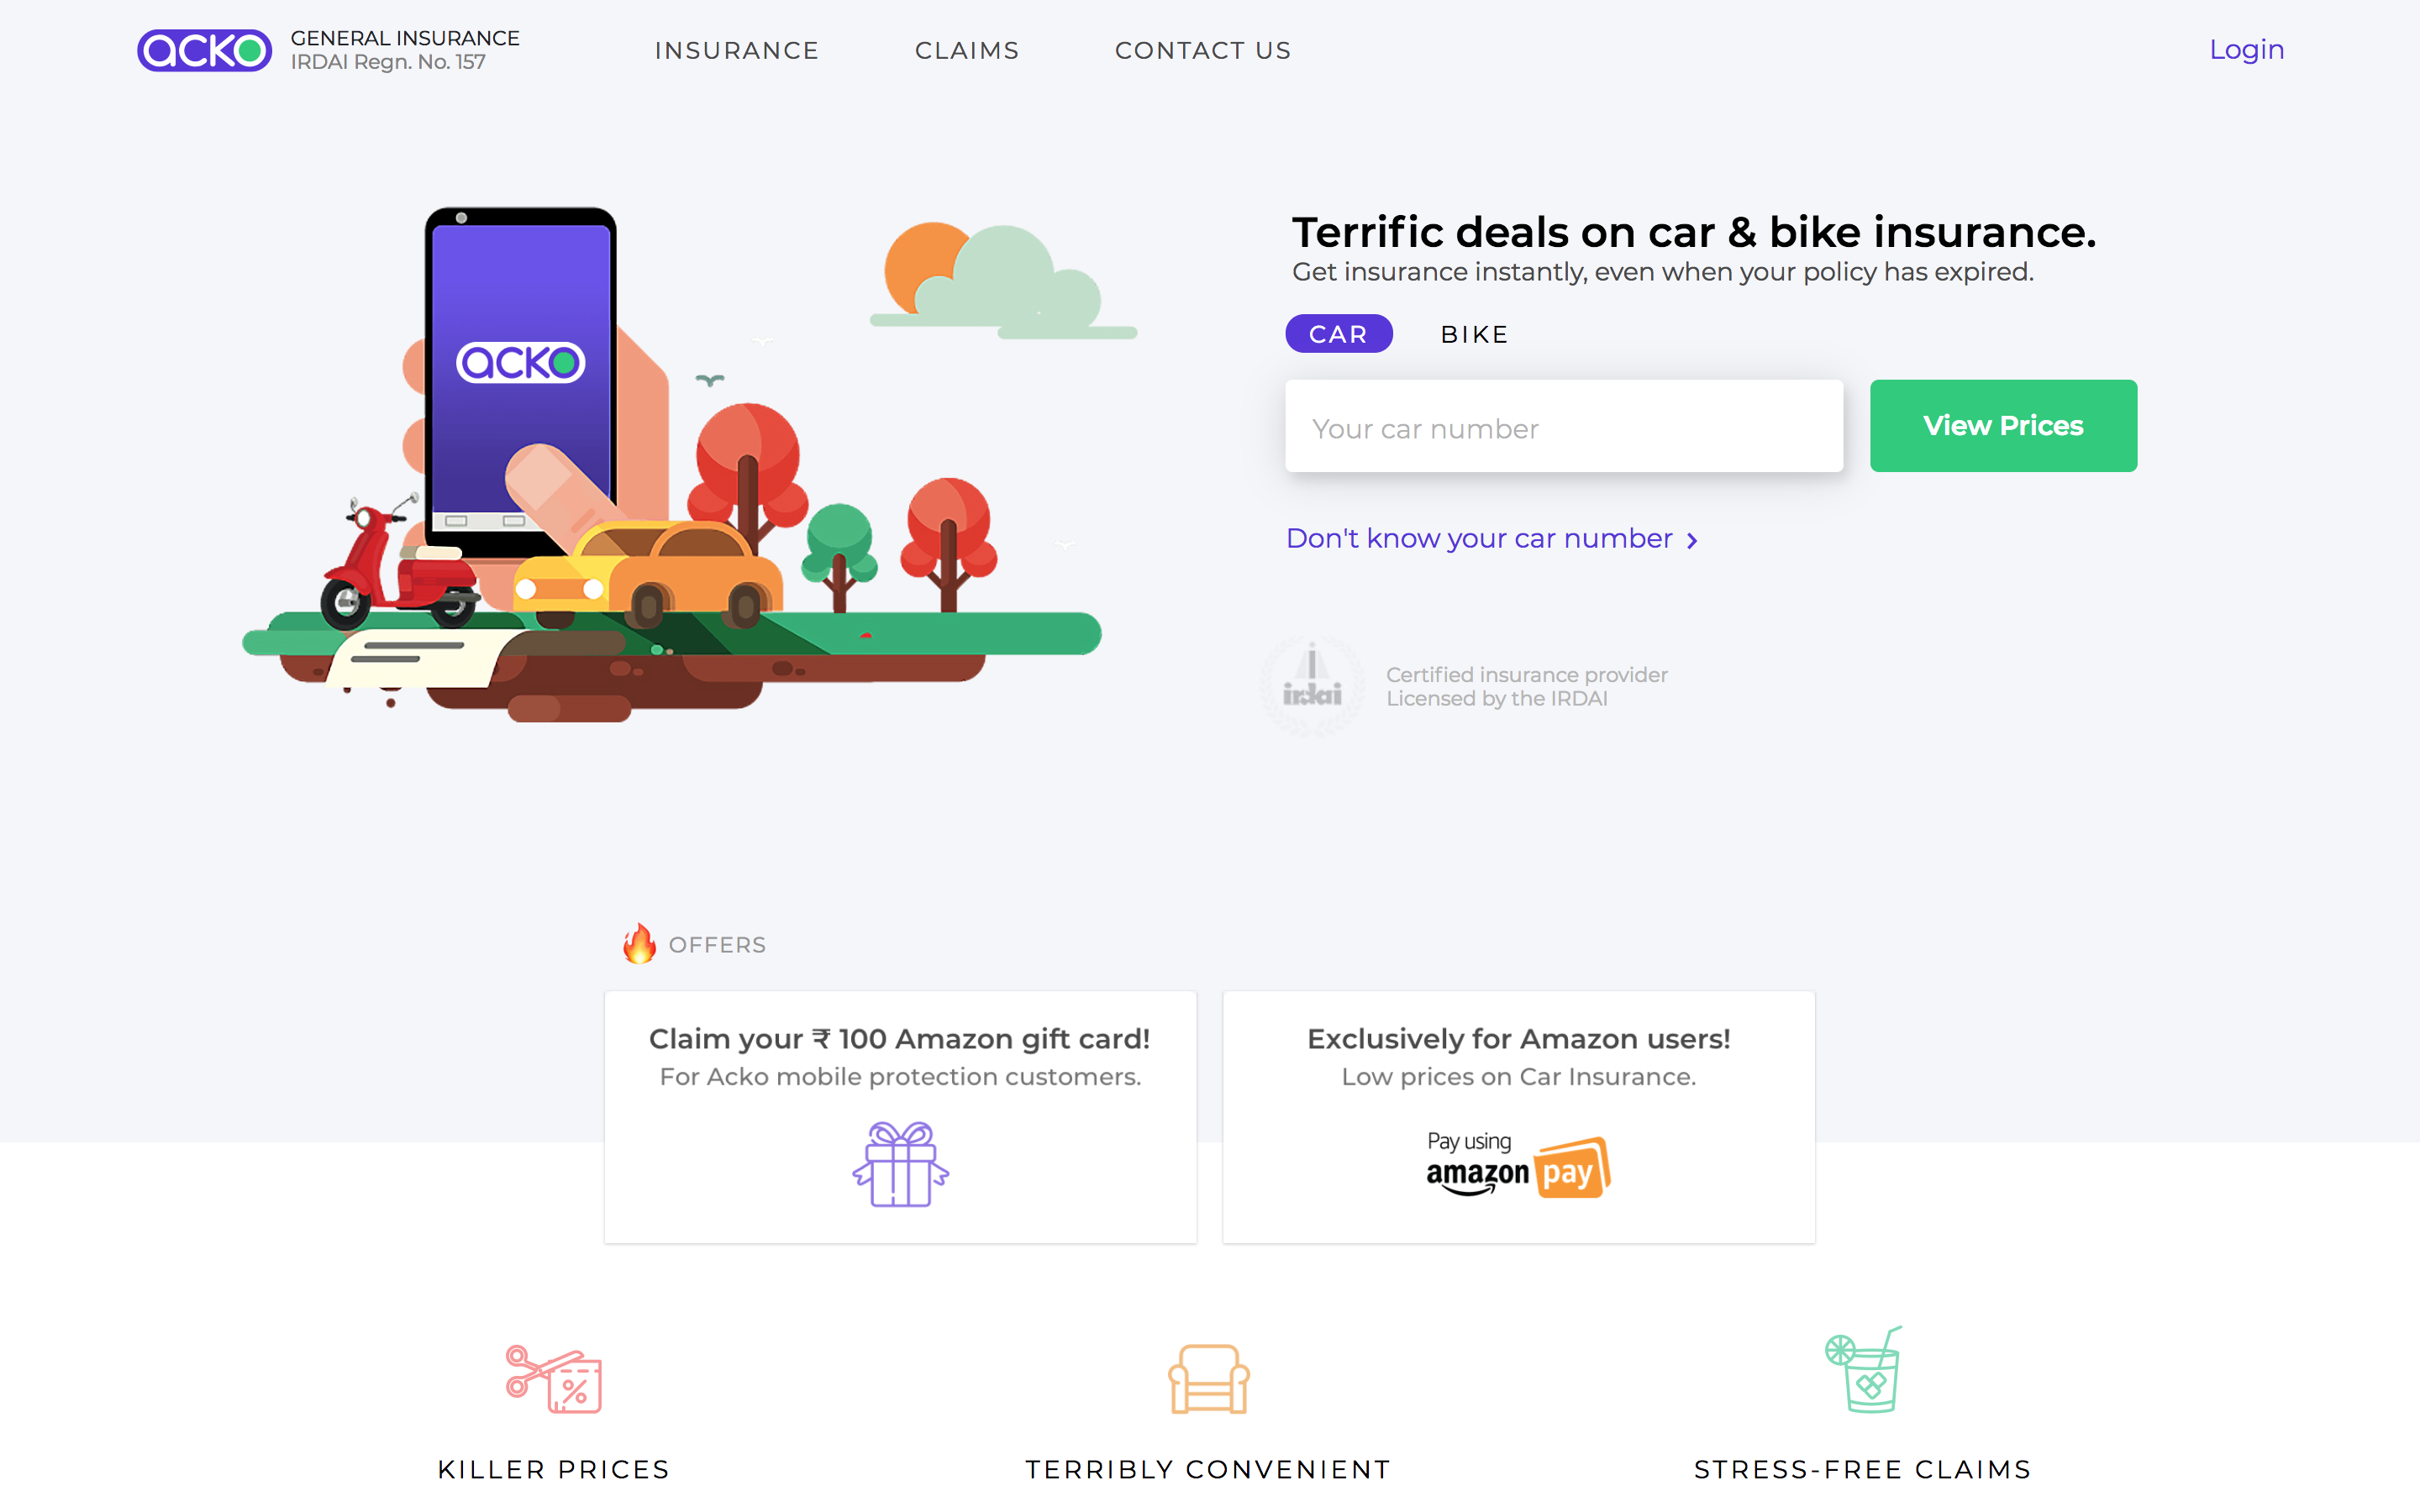 Amazon Leads 12m Investment In India Based Digital Insurance Startup Acko Investment In India Start Up Investing